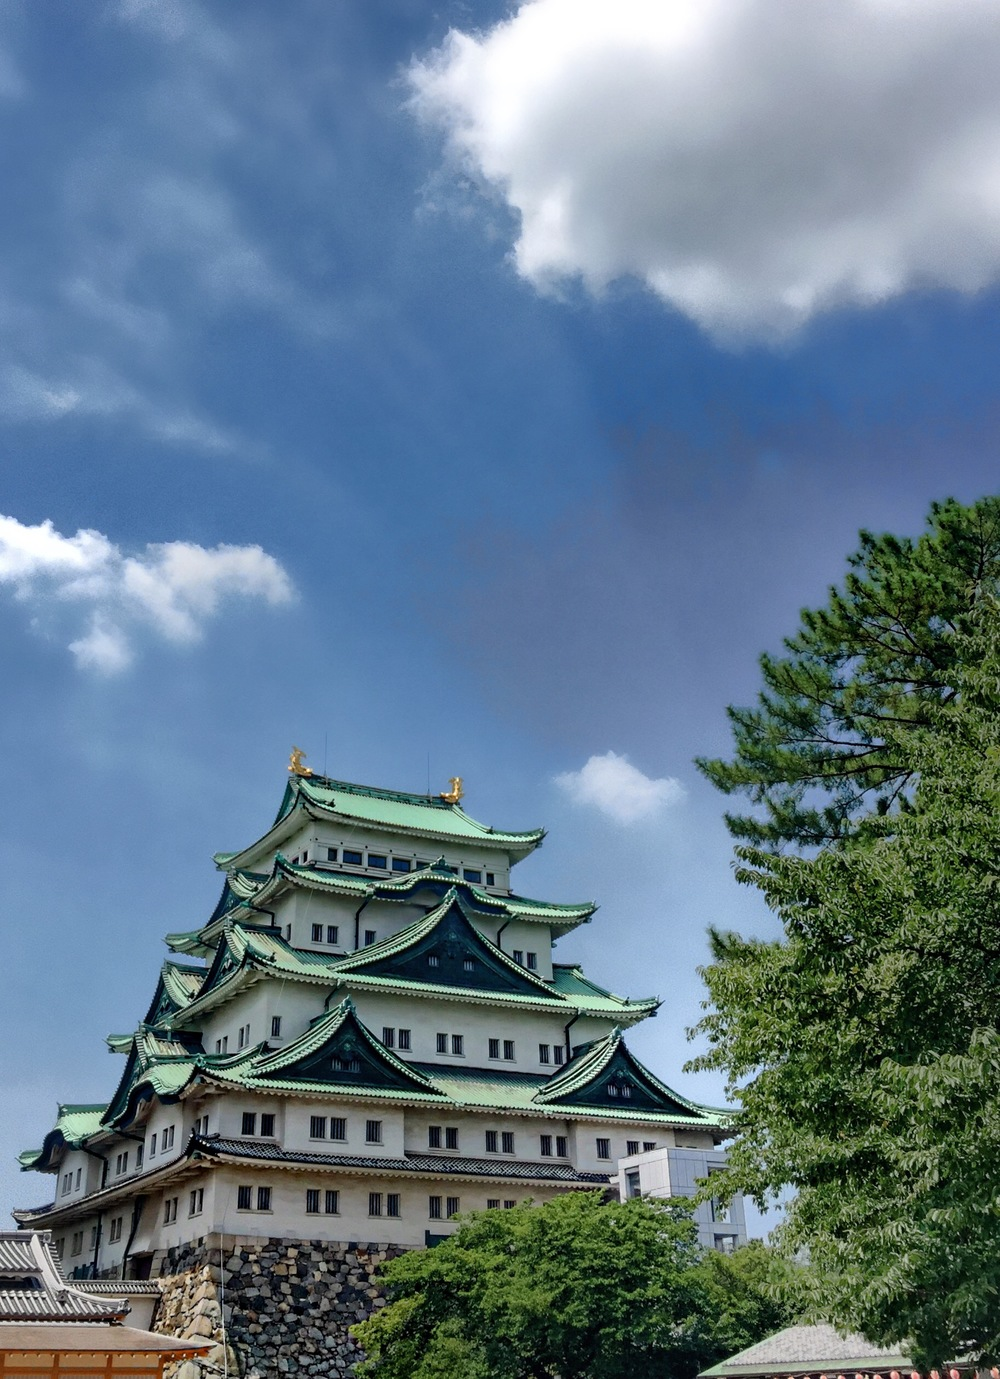 The Nagoya Castle